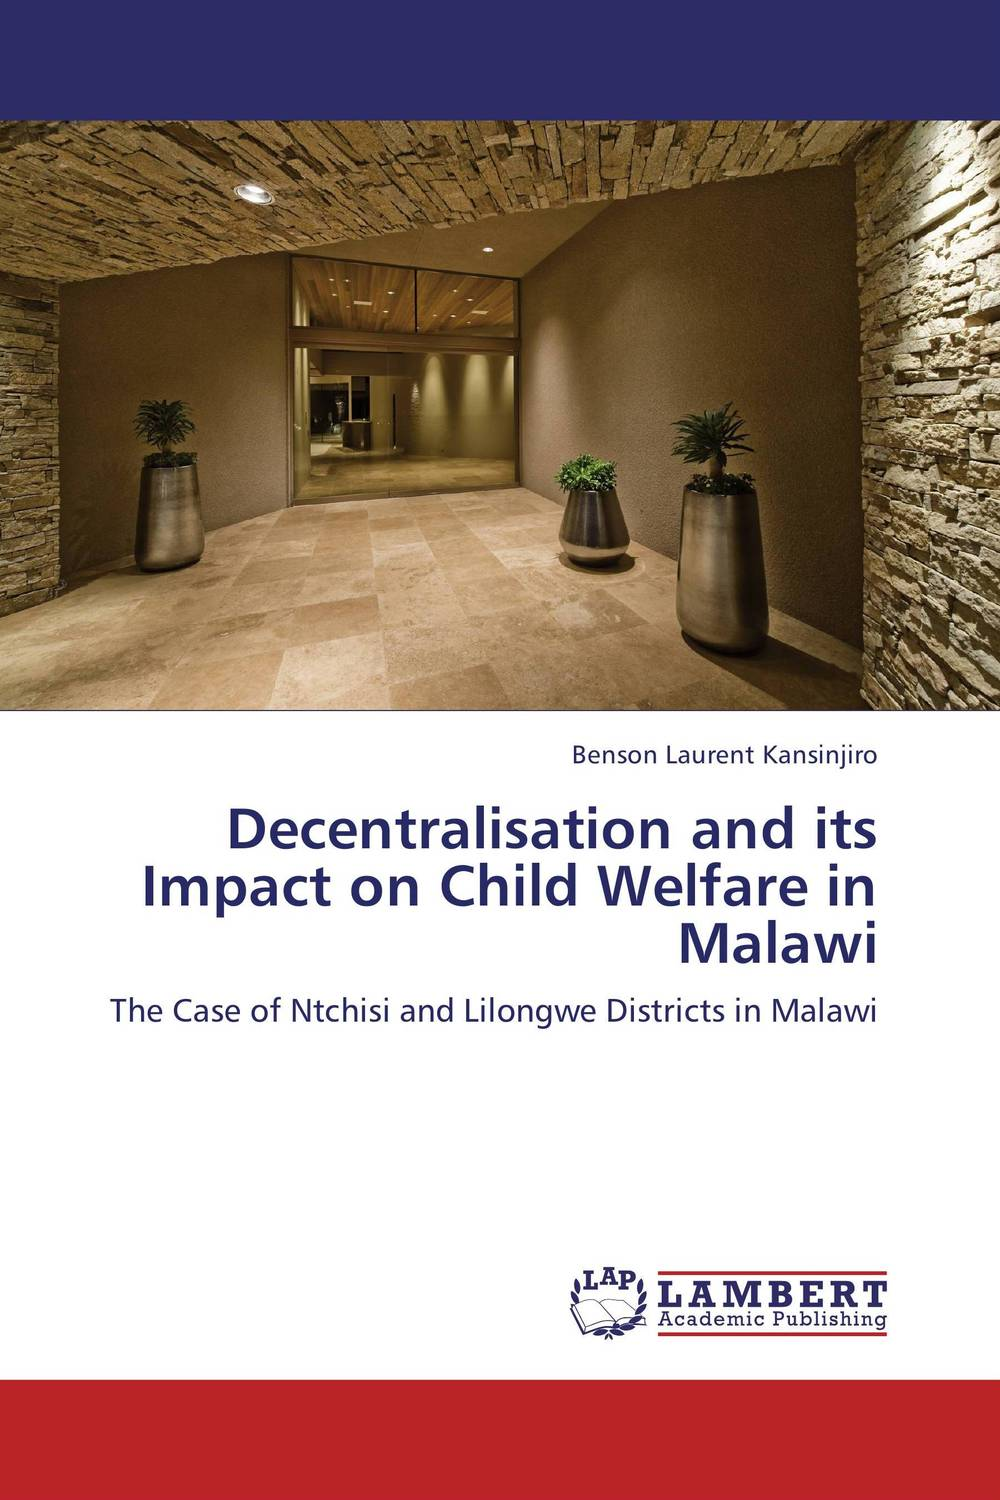 Decentralisation and its Impact on Child Welfare in Malawi sujata kapoor dividend policy and its impact on shareholders wealth